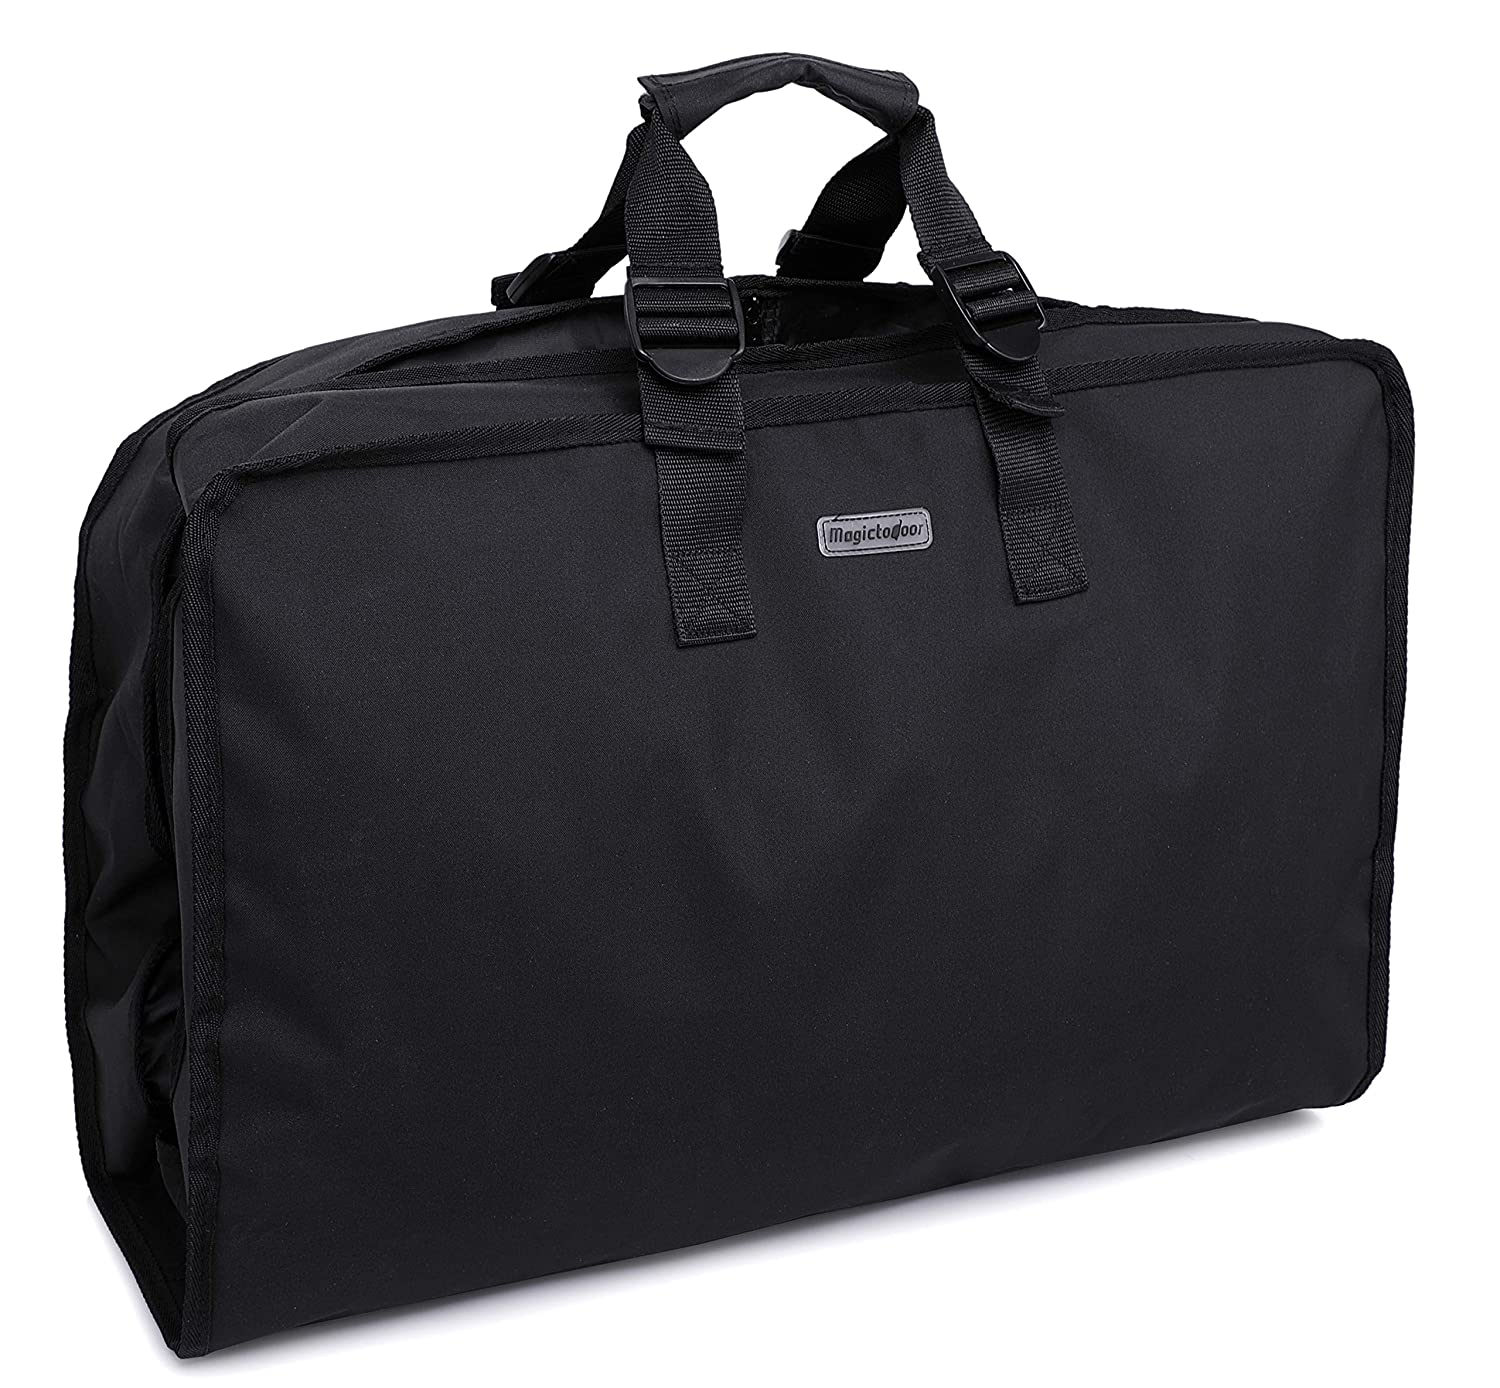 Magictodoor Travel Garment Bag 40